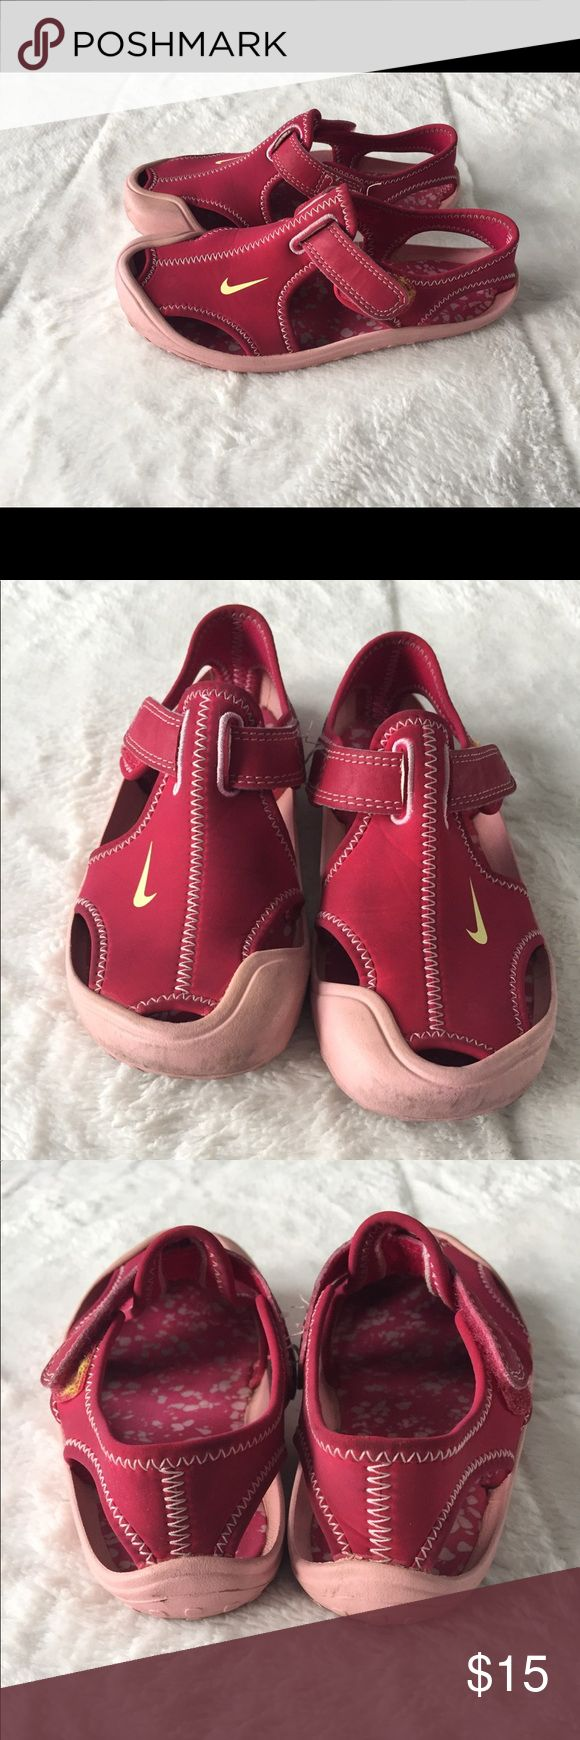 Girl Nike Protective Water Shoes/Sandals Good used condition! Give your girl a shoe that she'll want to wear for almost any occasion. A quick-dry upper combines with a molded rubber traction outsole to create a shoe that protects while she plays. Nike Shoes Water Shoes